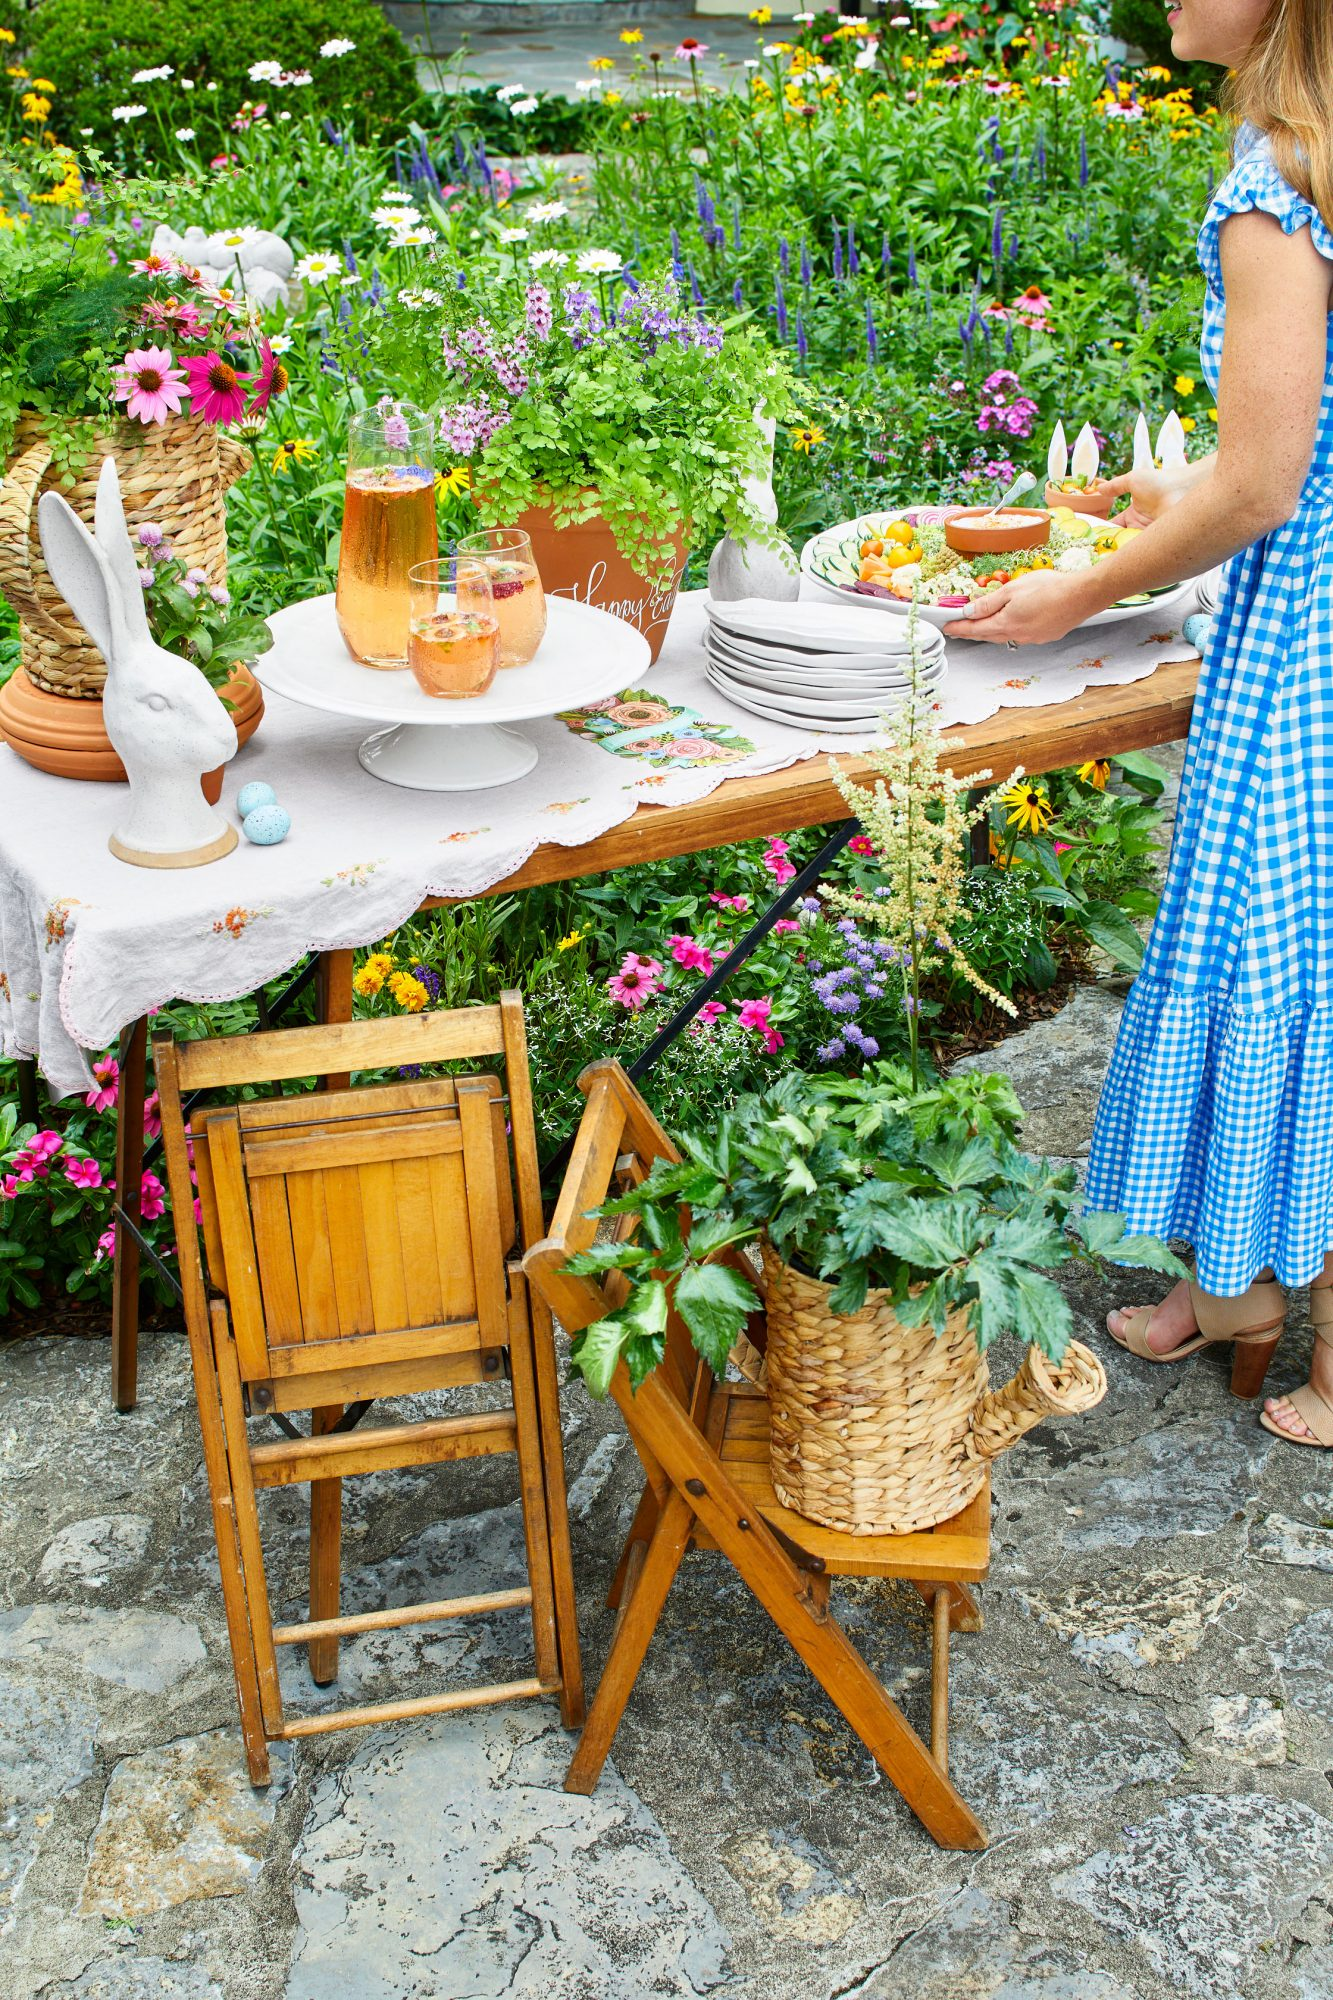 Garden themed Easter party with potted plants, vintage linens, and Easter accents